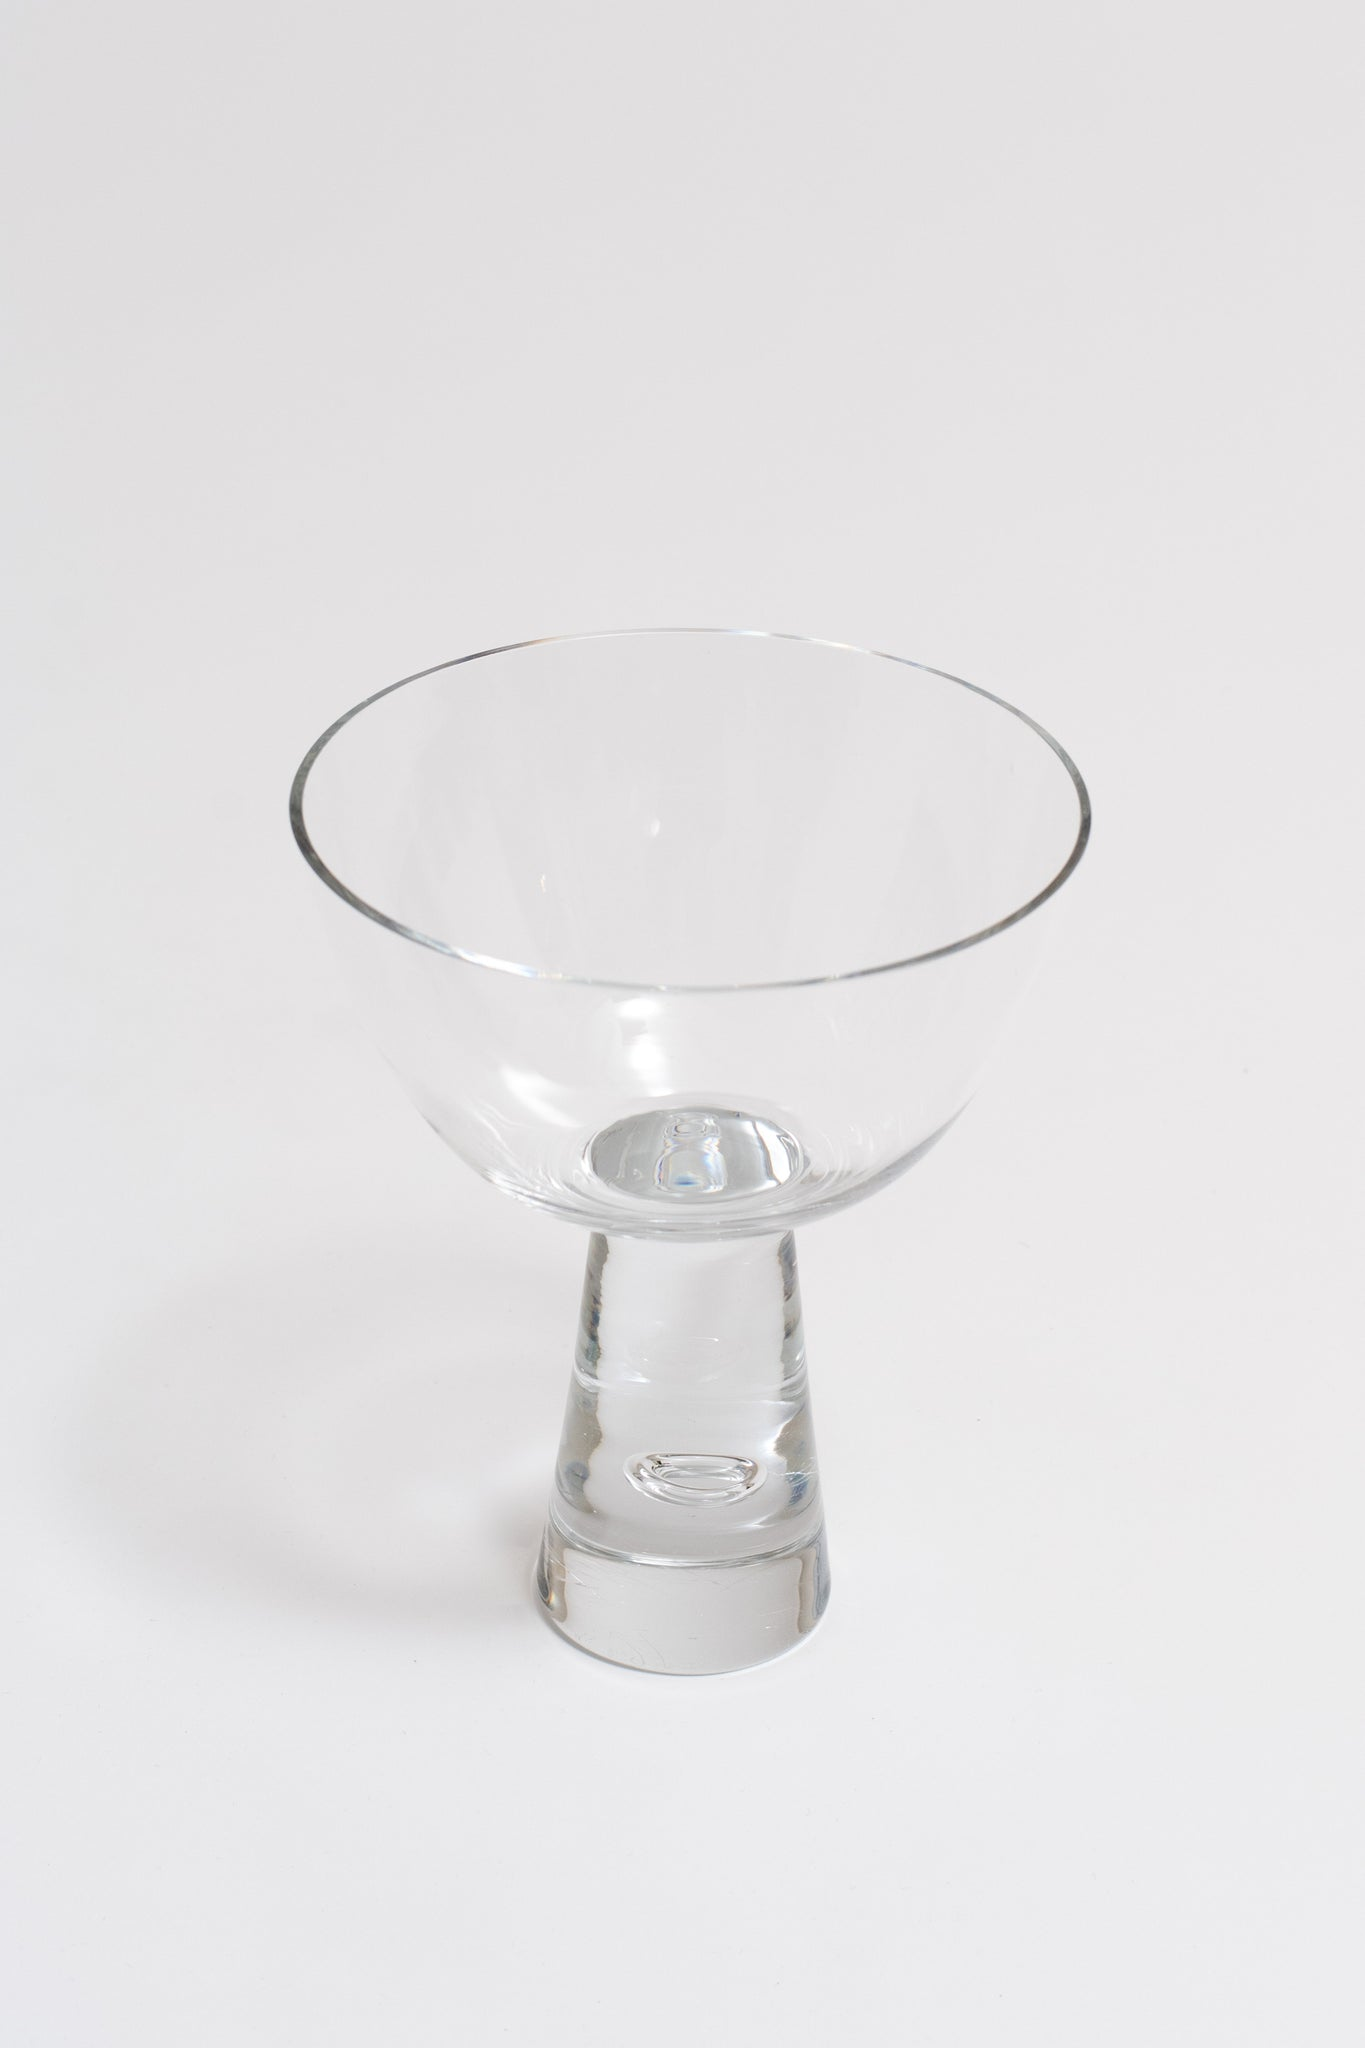 GLASS COMPOTE, C. 1960